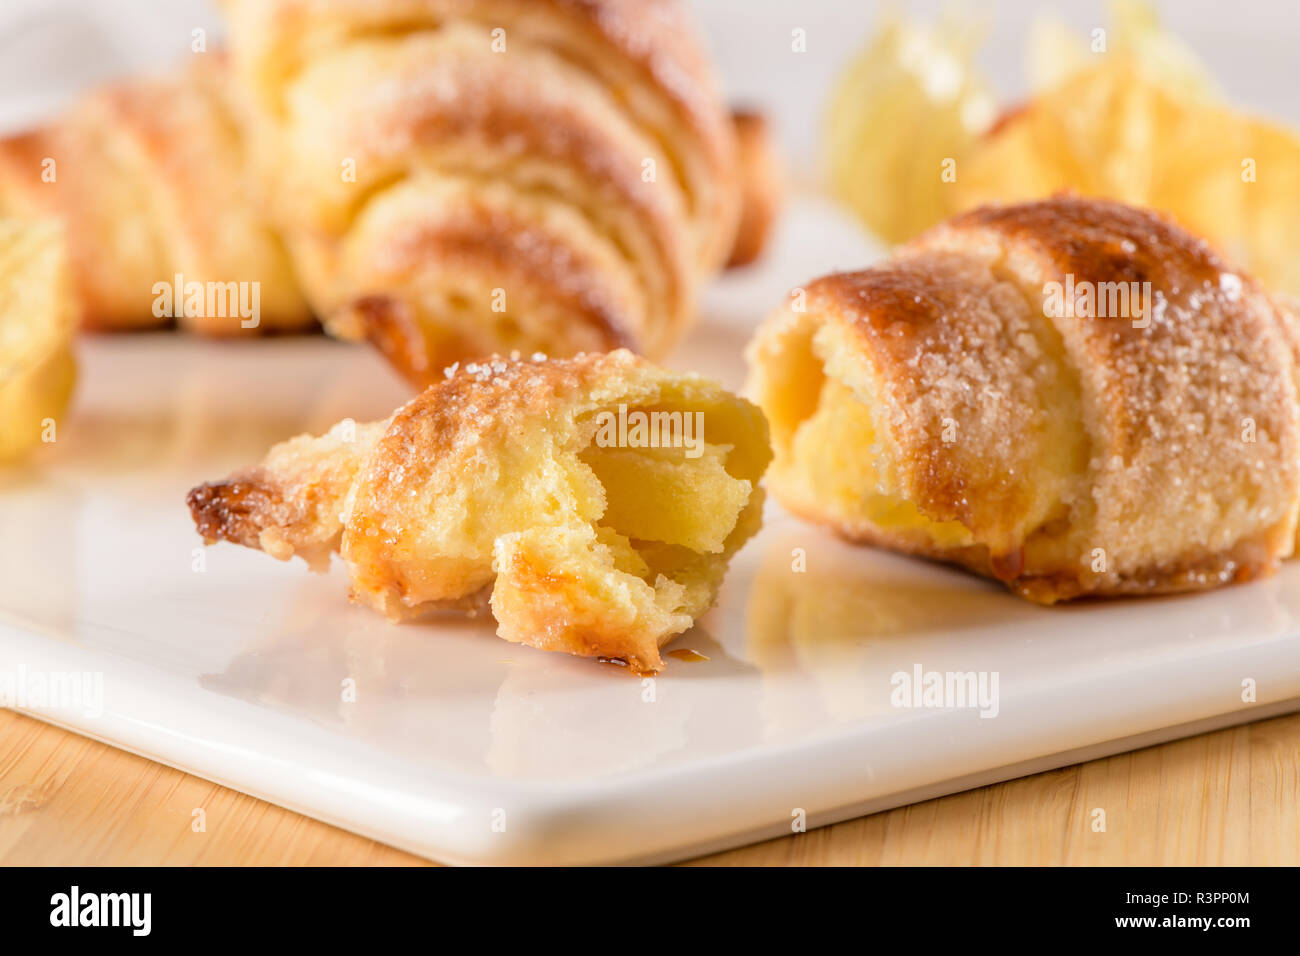 Small croissant with physalis fruits in white ceramic tray, homemade cakes on wooden table top. - Stock Image